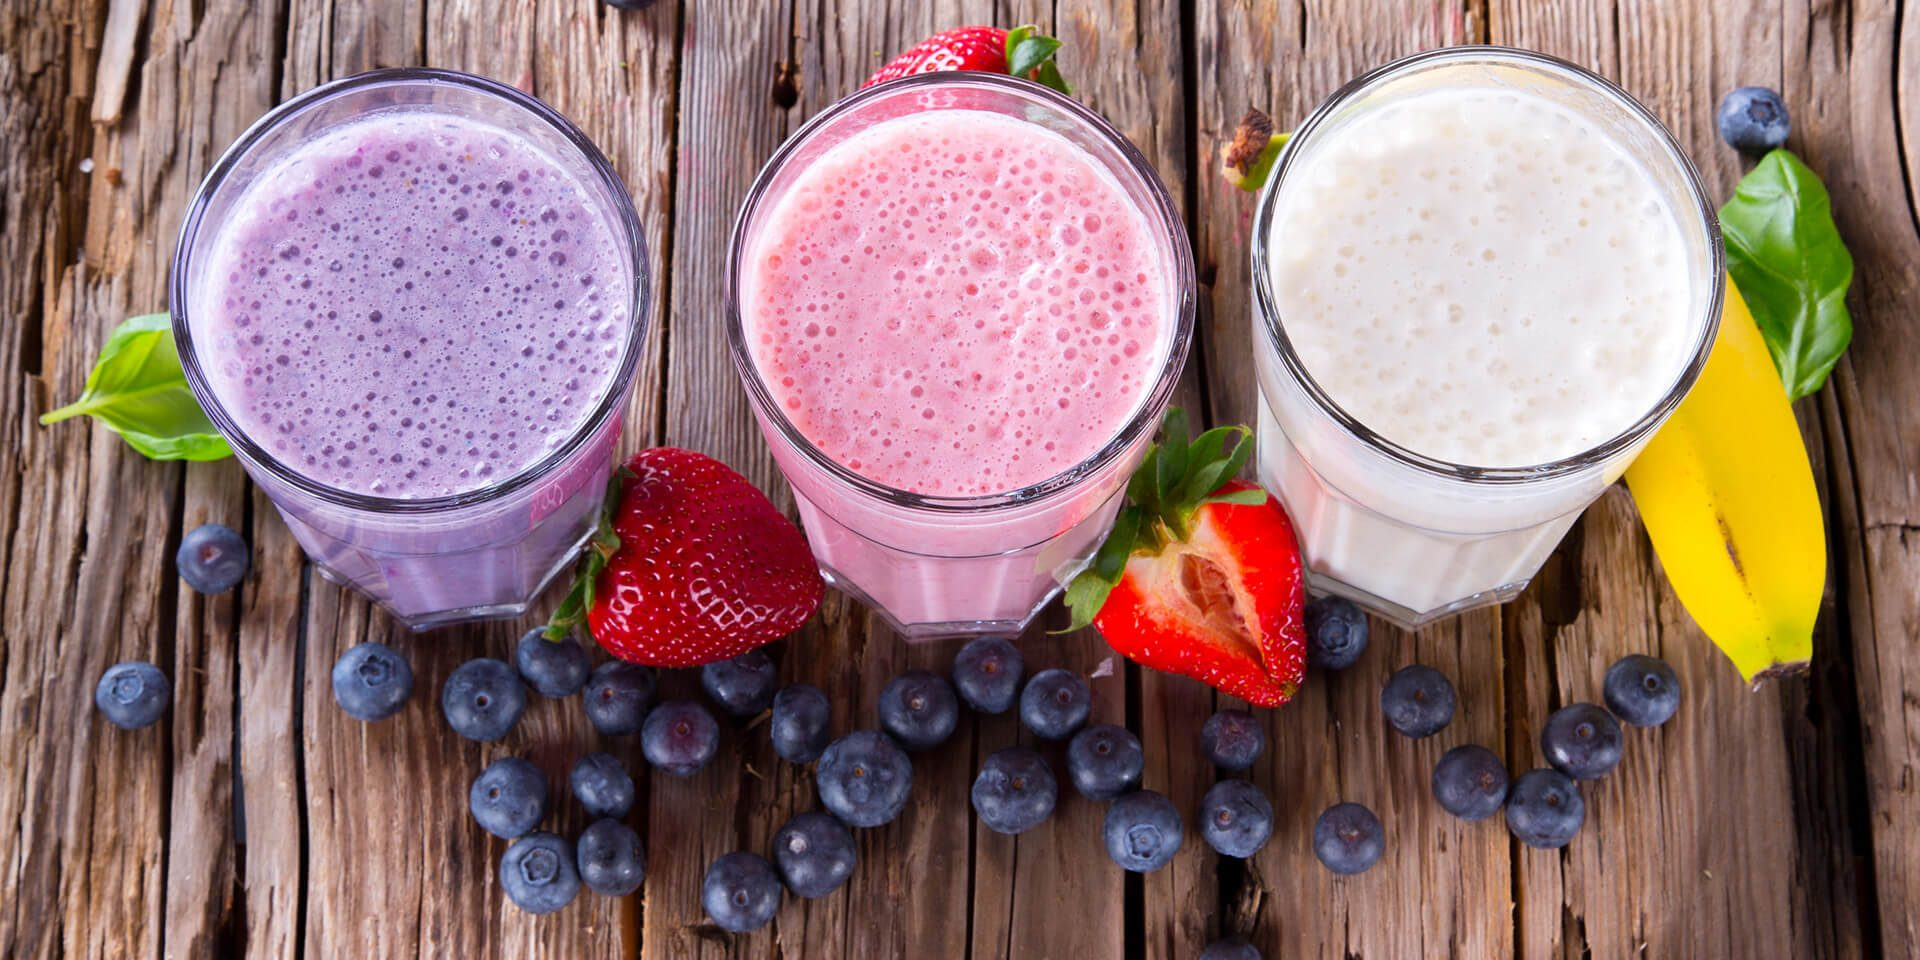 Smoothies, stabilizers compounds in juice and dairy beverage, textures and smoothies, fruit flavors, fortified with natural ingredients, healthier ingredients, healthier lifestyle, healthier eating options